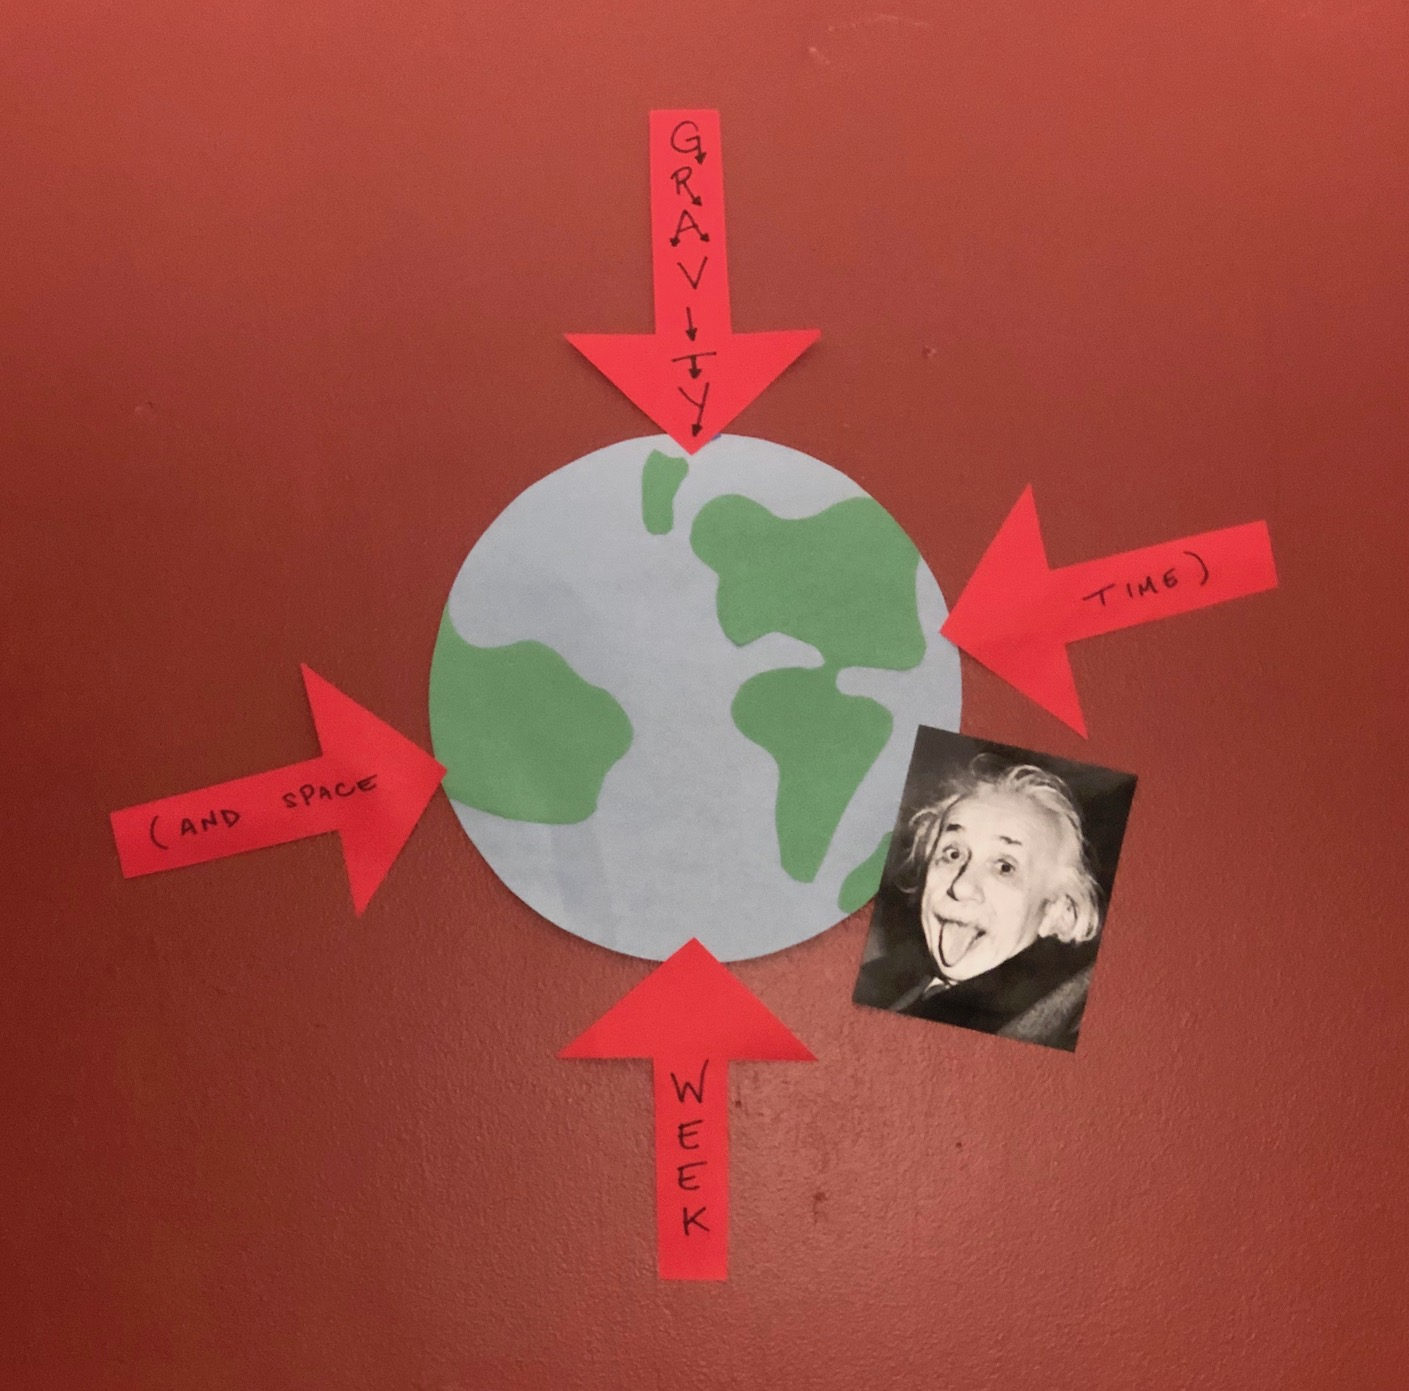 An earth made of construction paper is pasted on a wall. Four red arrows point towards the earth, each with part of the sentence Gravity and Spacetime Week. A picture of Albert Einstein with his tongue out overlaps part of the earth. They are all based on a dark red wall.